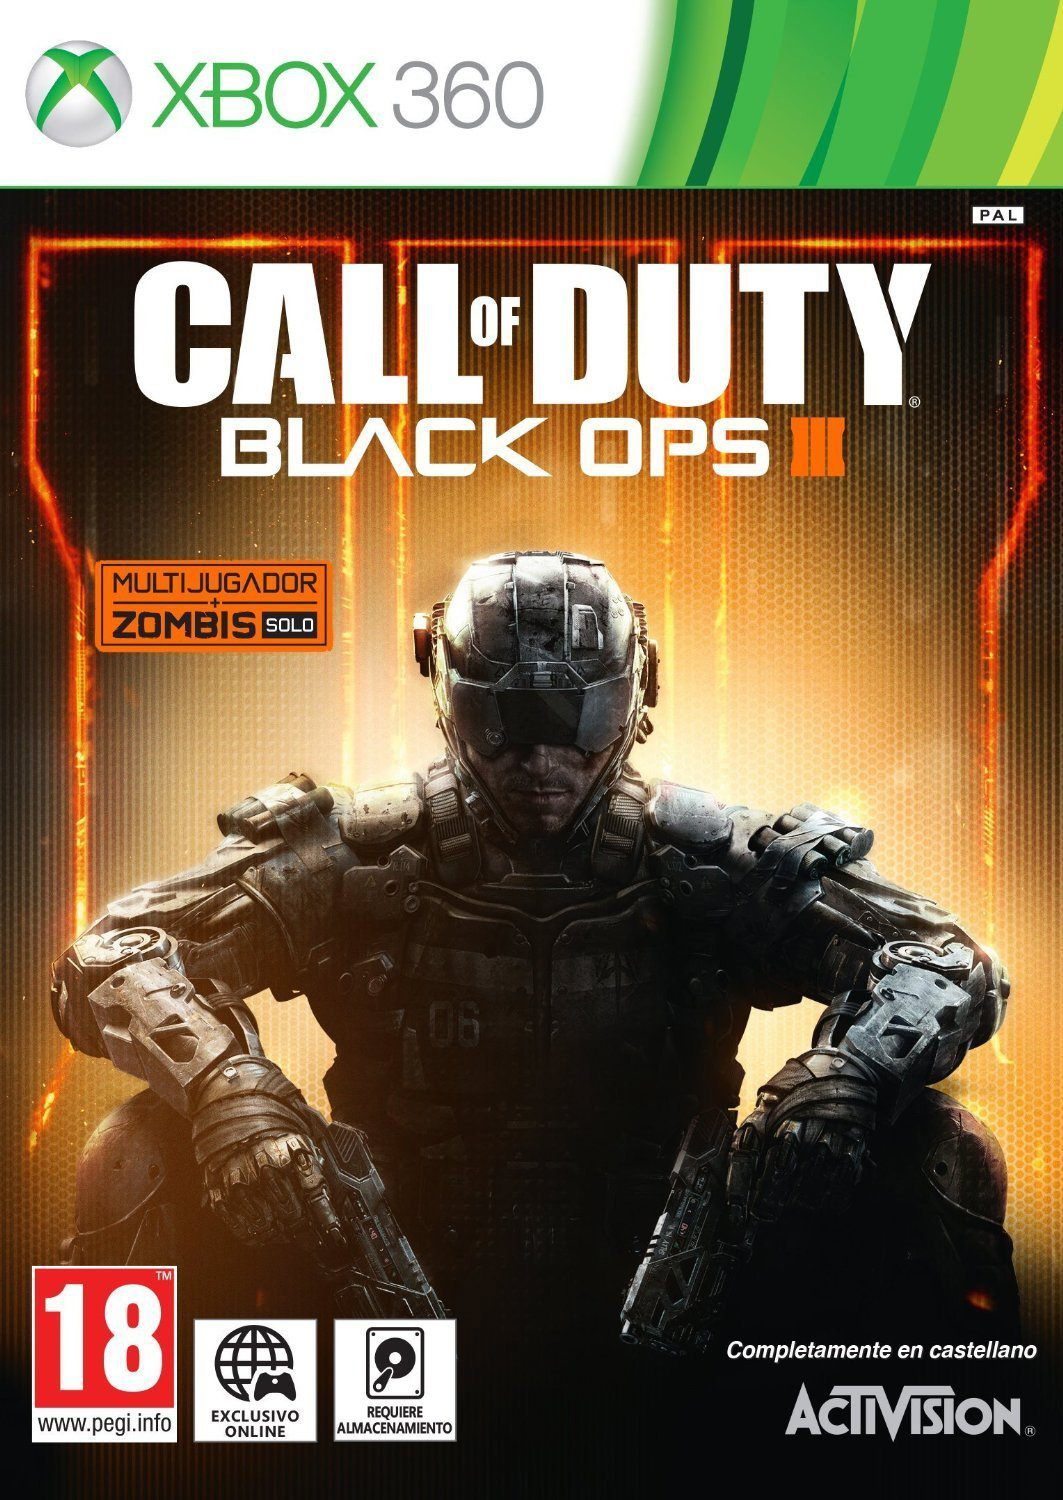 Ver Call Of Duty Black Ops III X360